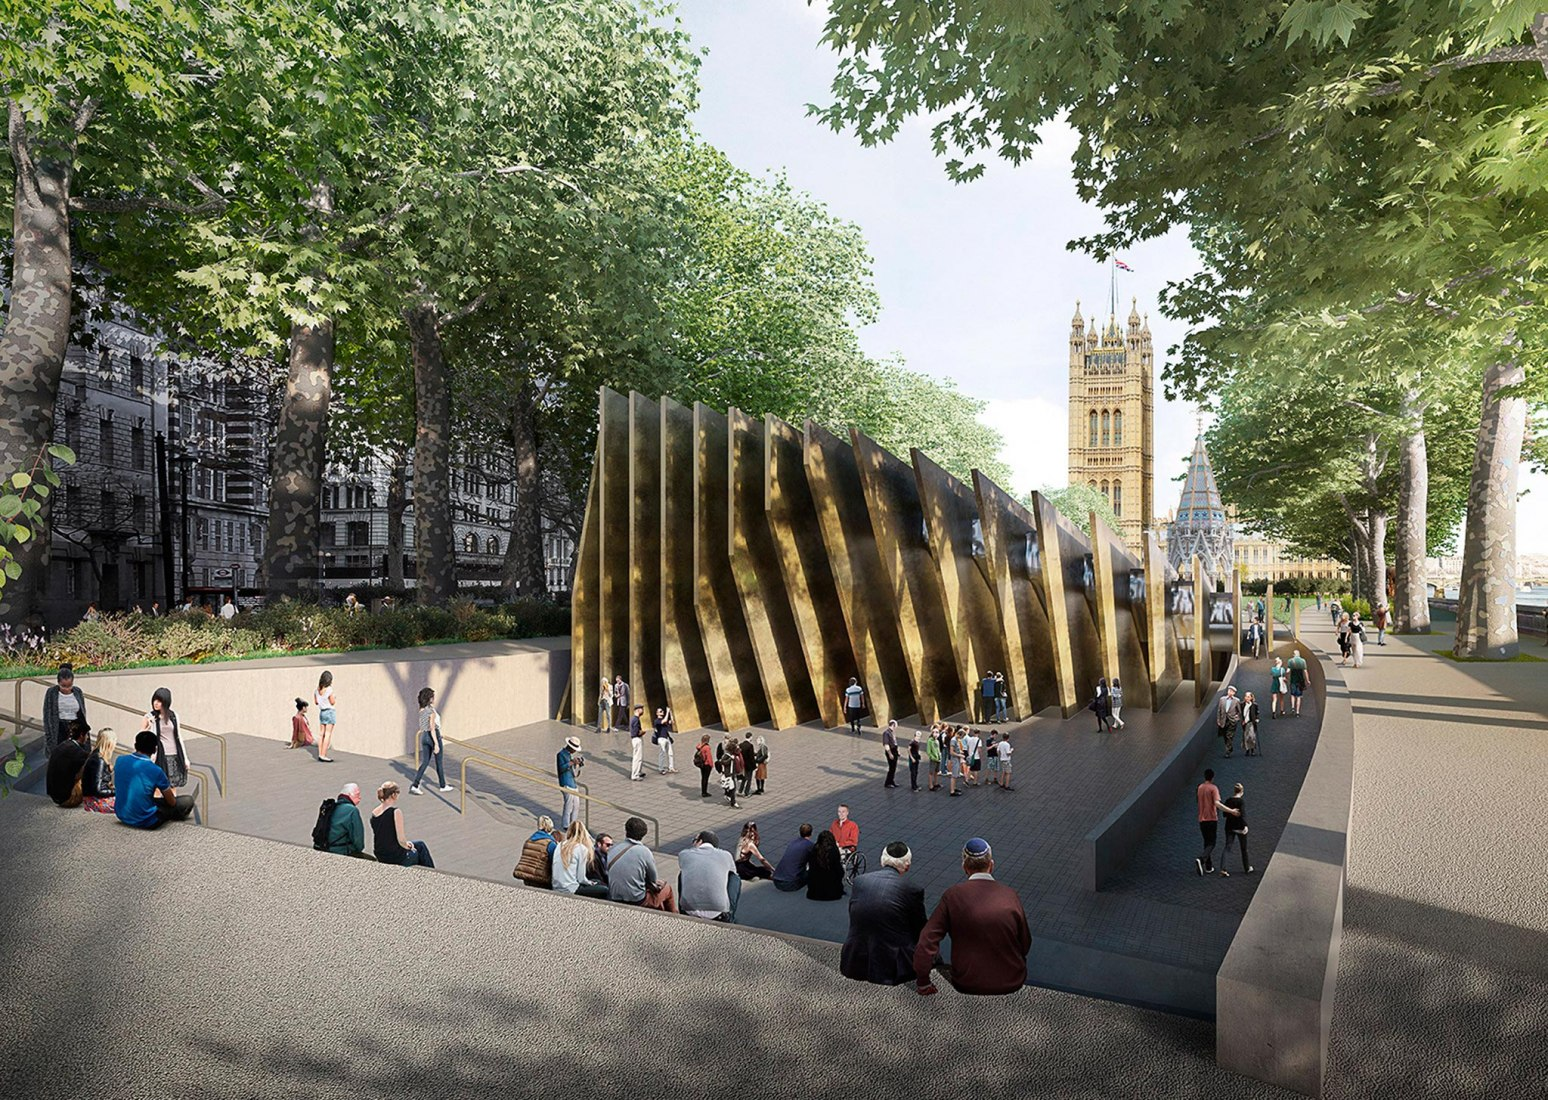 Rendering. UK Holocaust memorial by Adjaye Associates and Ron Arad Architects